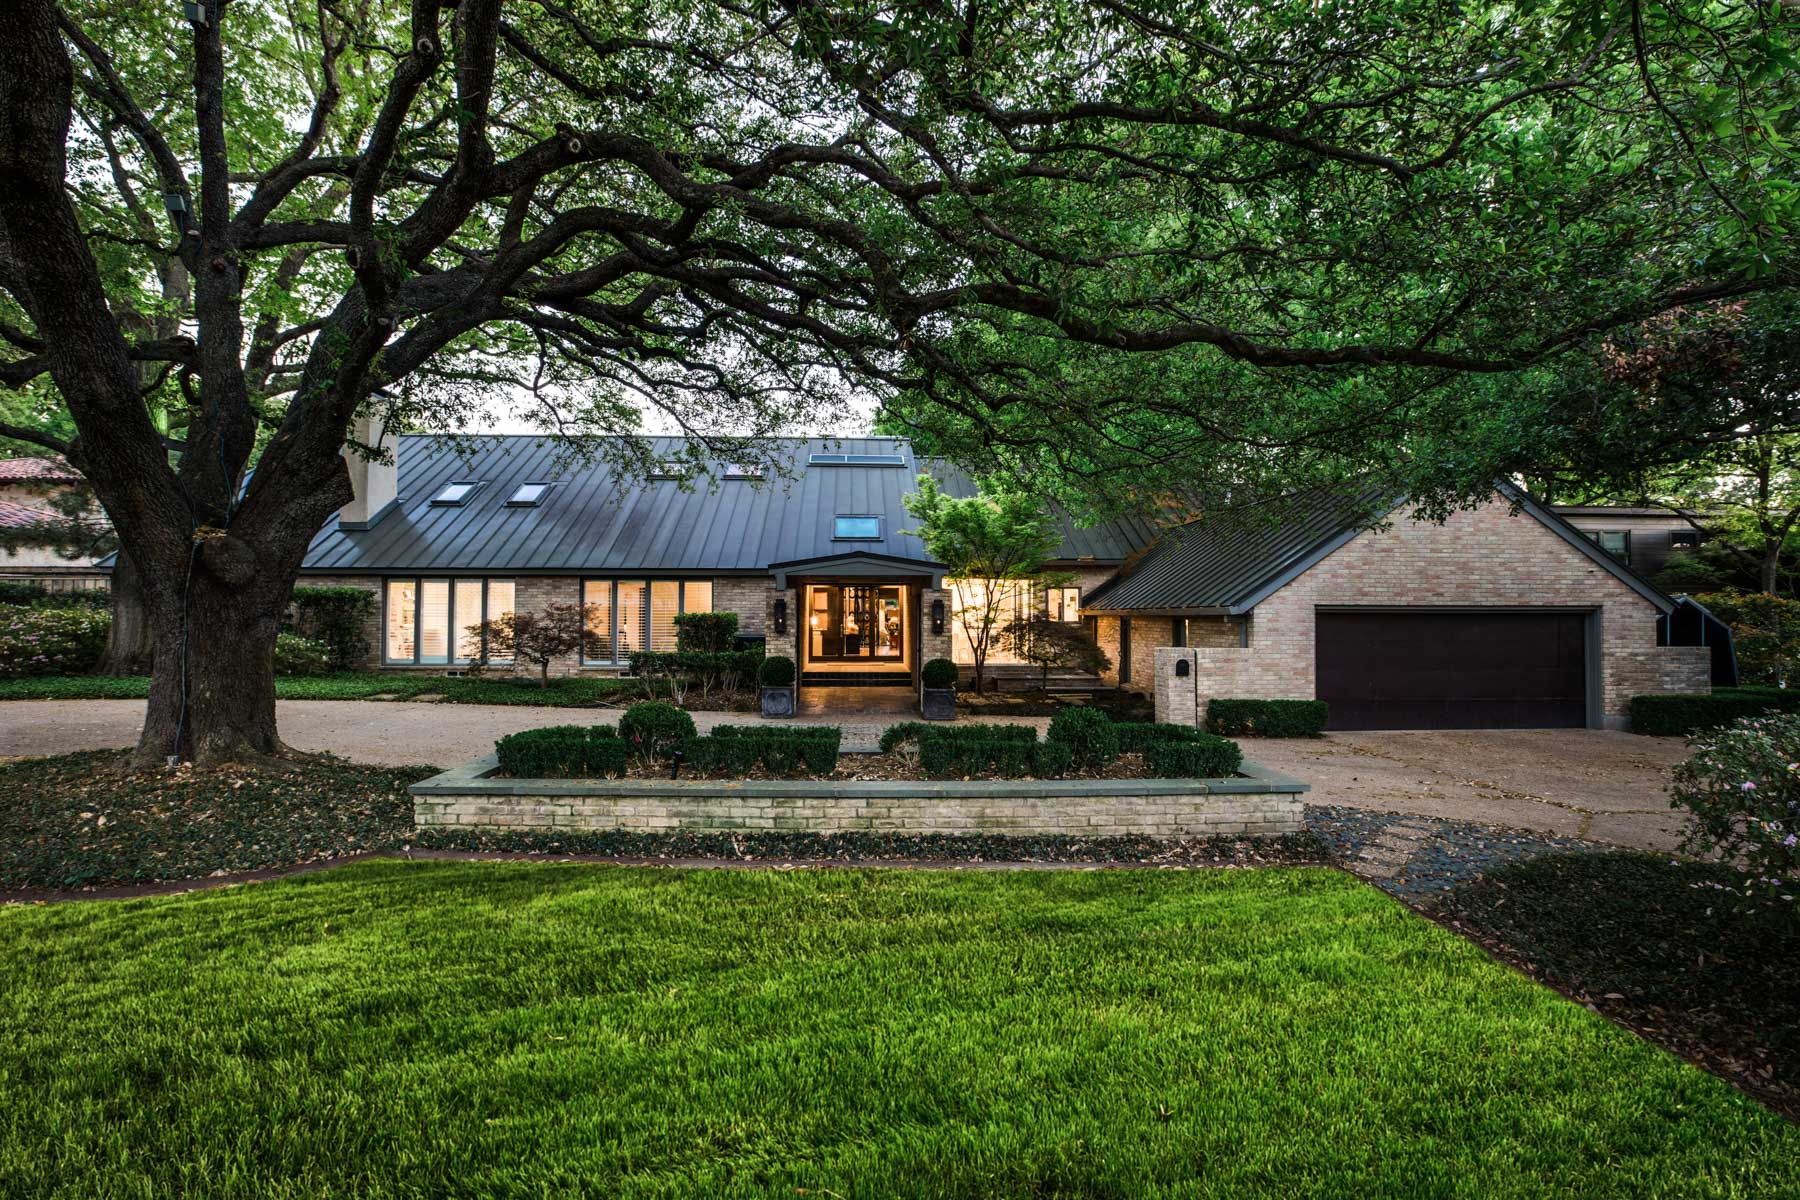 Single Family Home for Sale at Stunning Greenway Parks Contemporary 5330 Drane Dr Dallas, Texas, 75209 United States